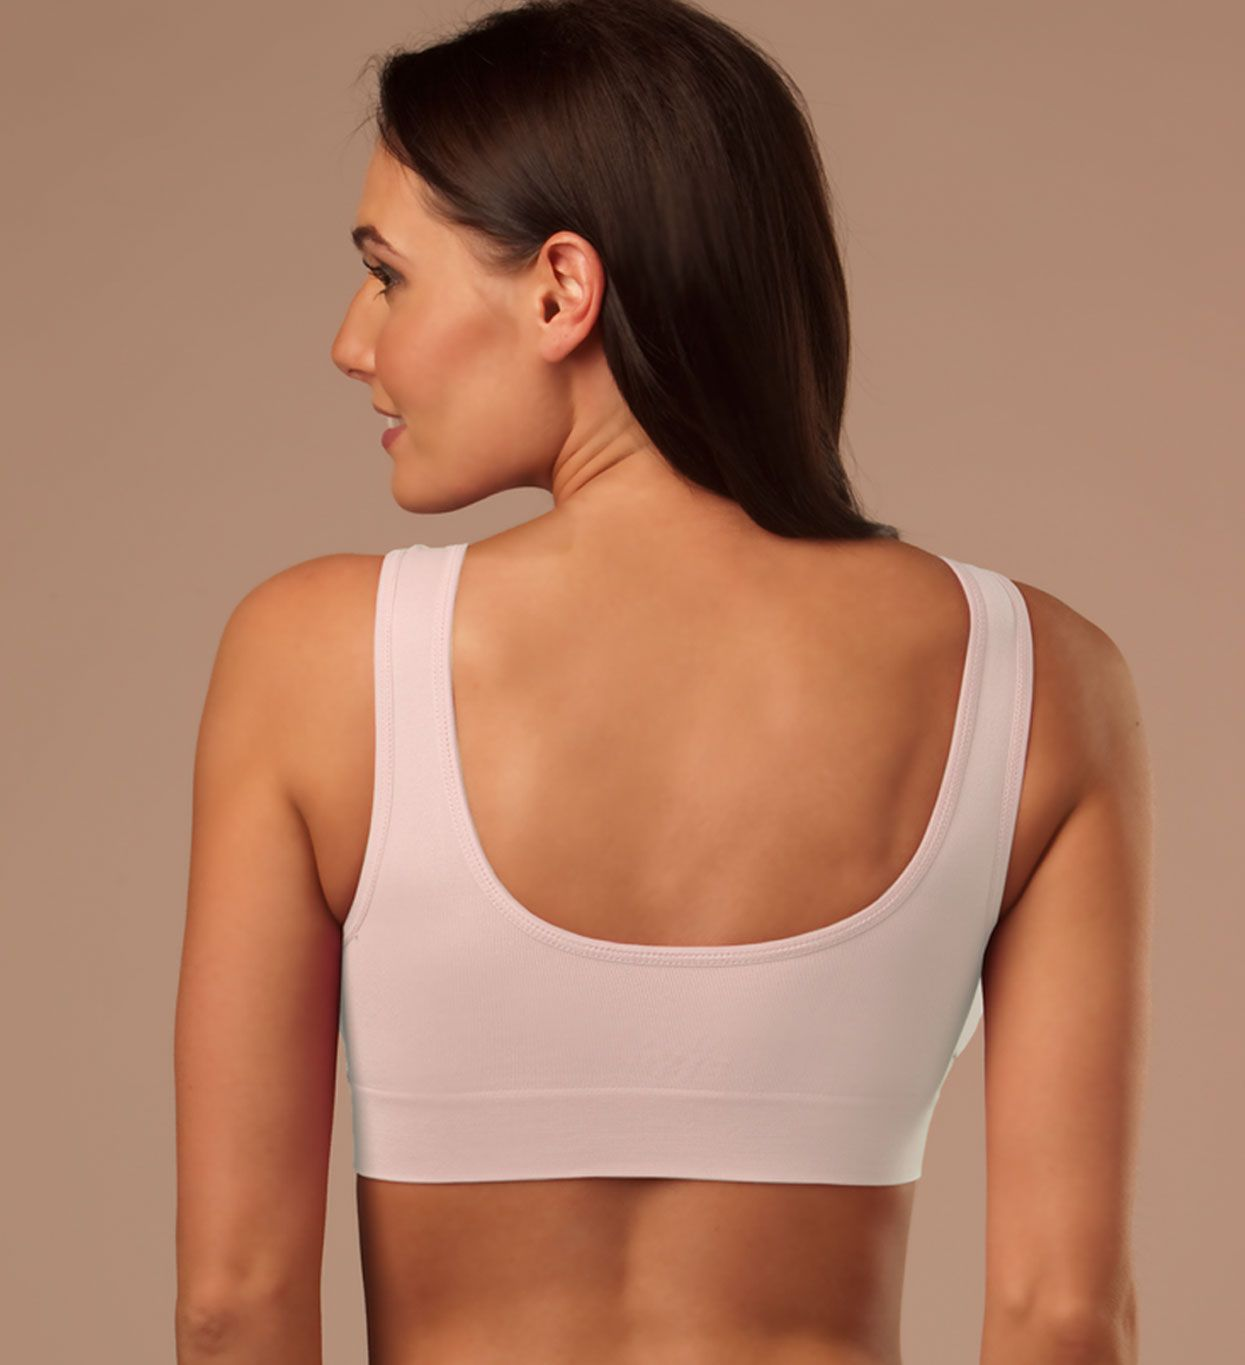 95d4b249c1 Genie Bra smooths the back and helps eliminate spillage.  seamlessbra   seamless  wirefree